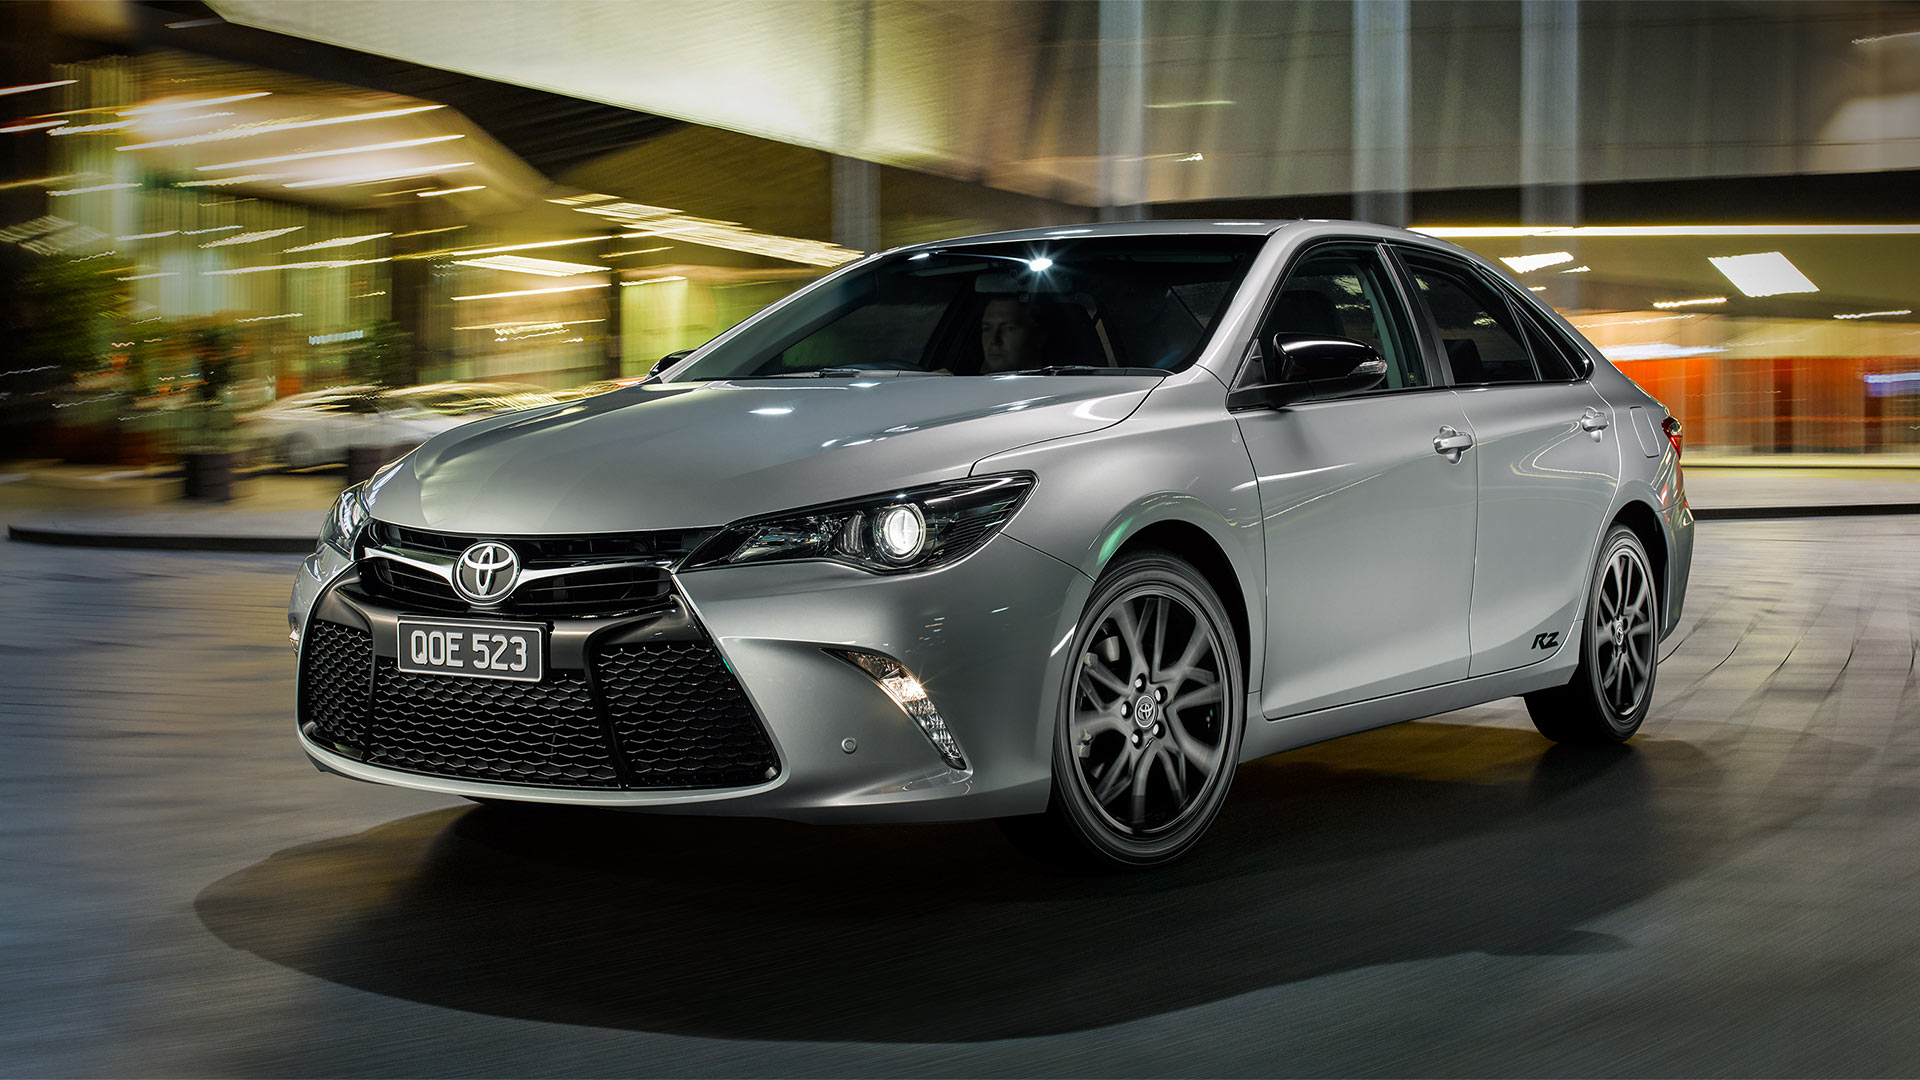 Camry-RZ-Front_1920x1080